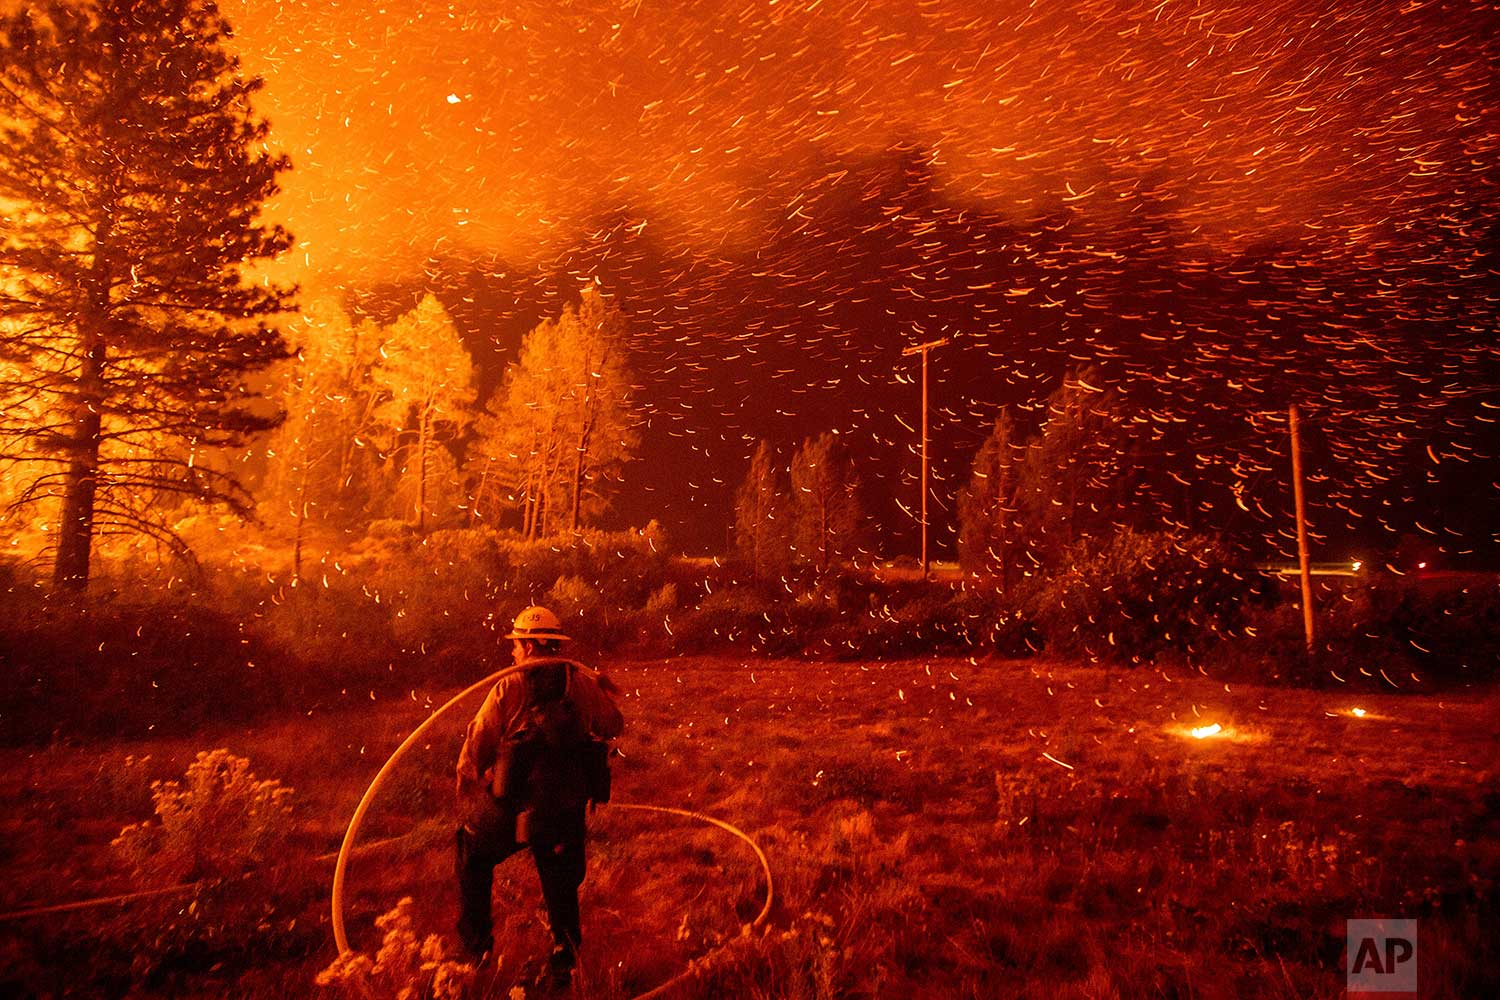 Embers fly above a firefighter as he works to control a backfire as the Delta Fire burns in the Shasta-Trinity National Forest, Calif., on Thursday, Sept. 6, 2018. The blaze had tripled in size overnight. (AP Photo/Noah Berger)